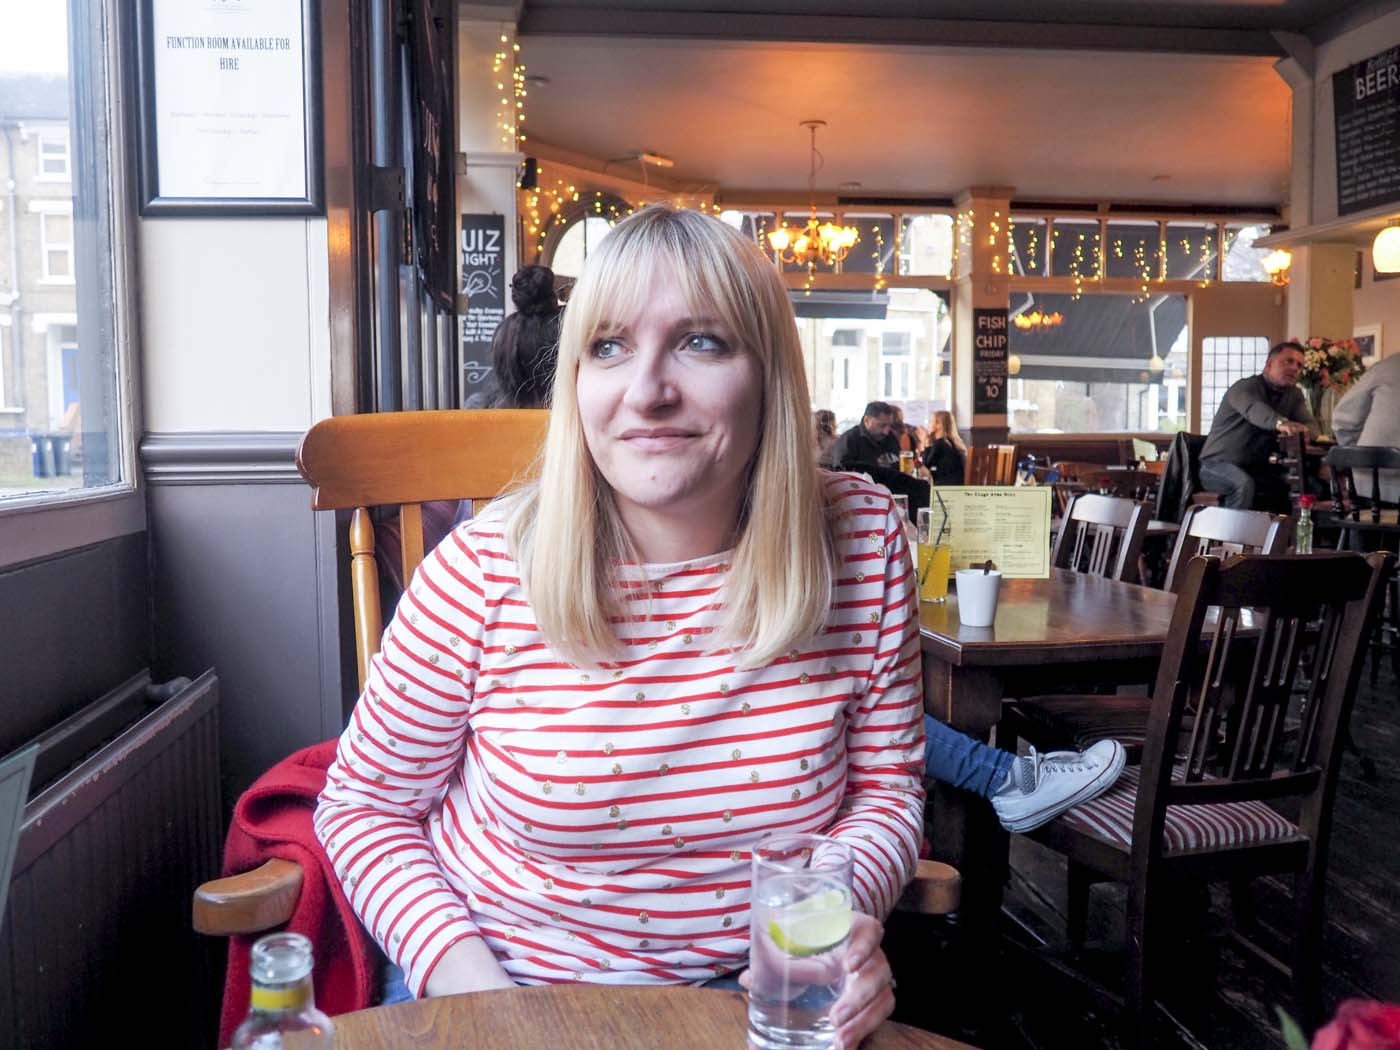 King's Arms Ealing review